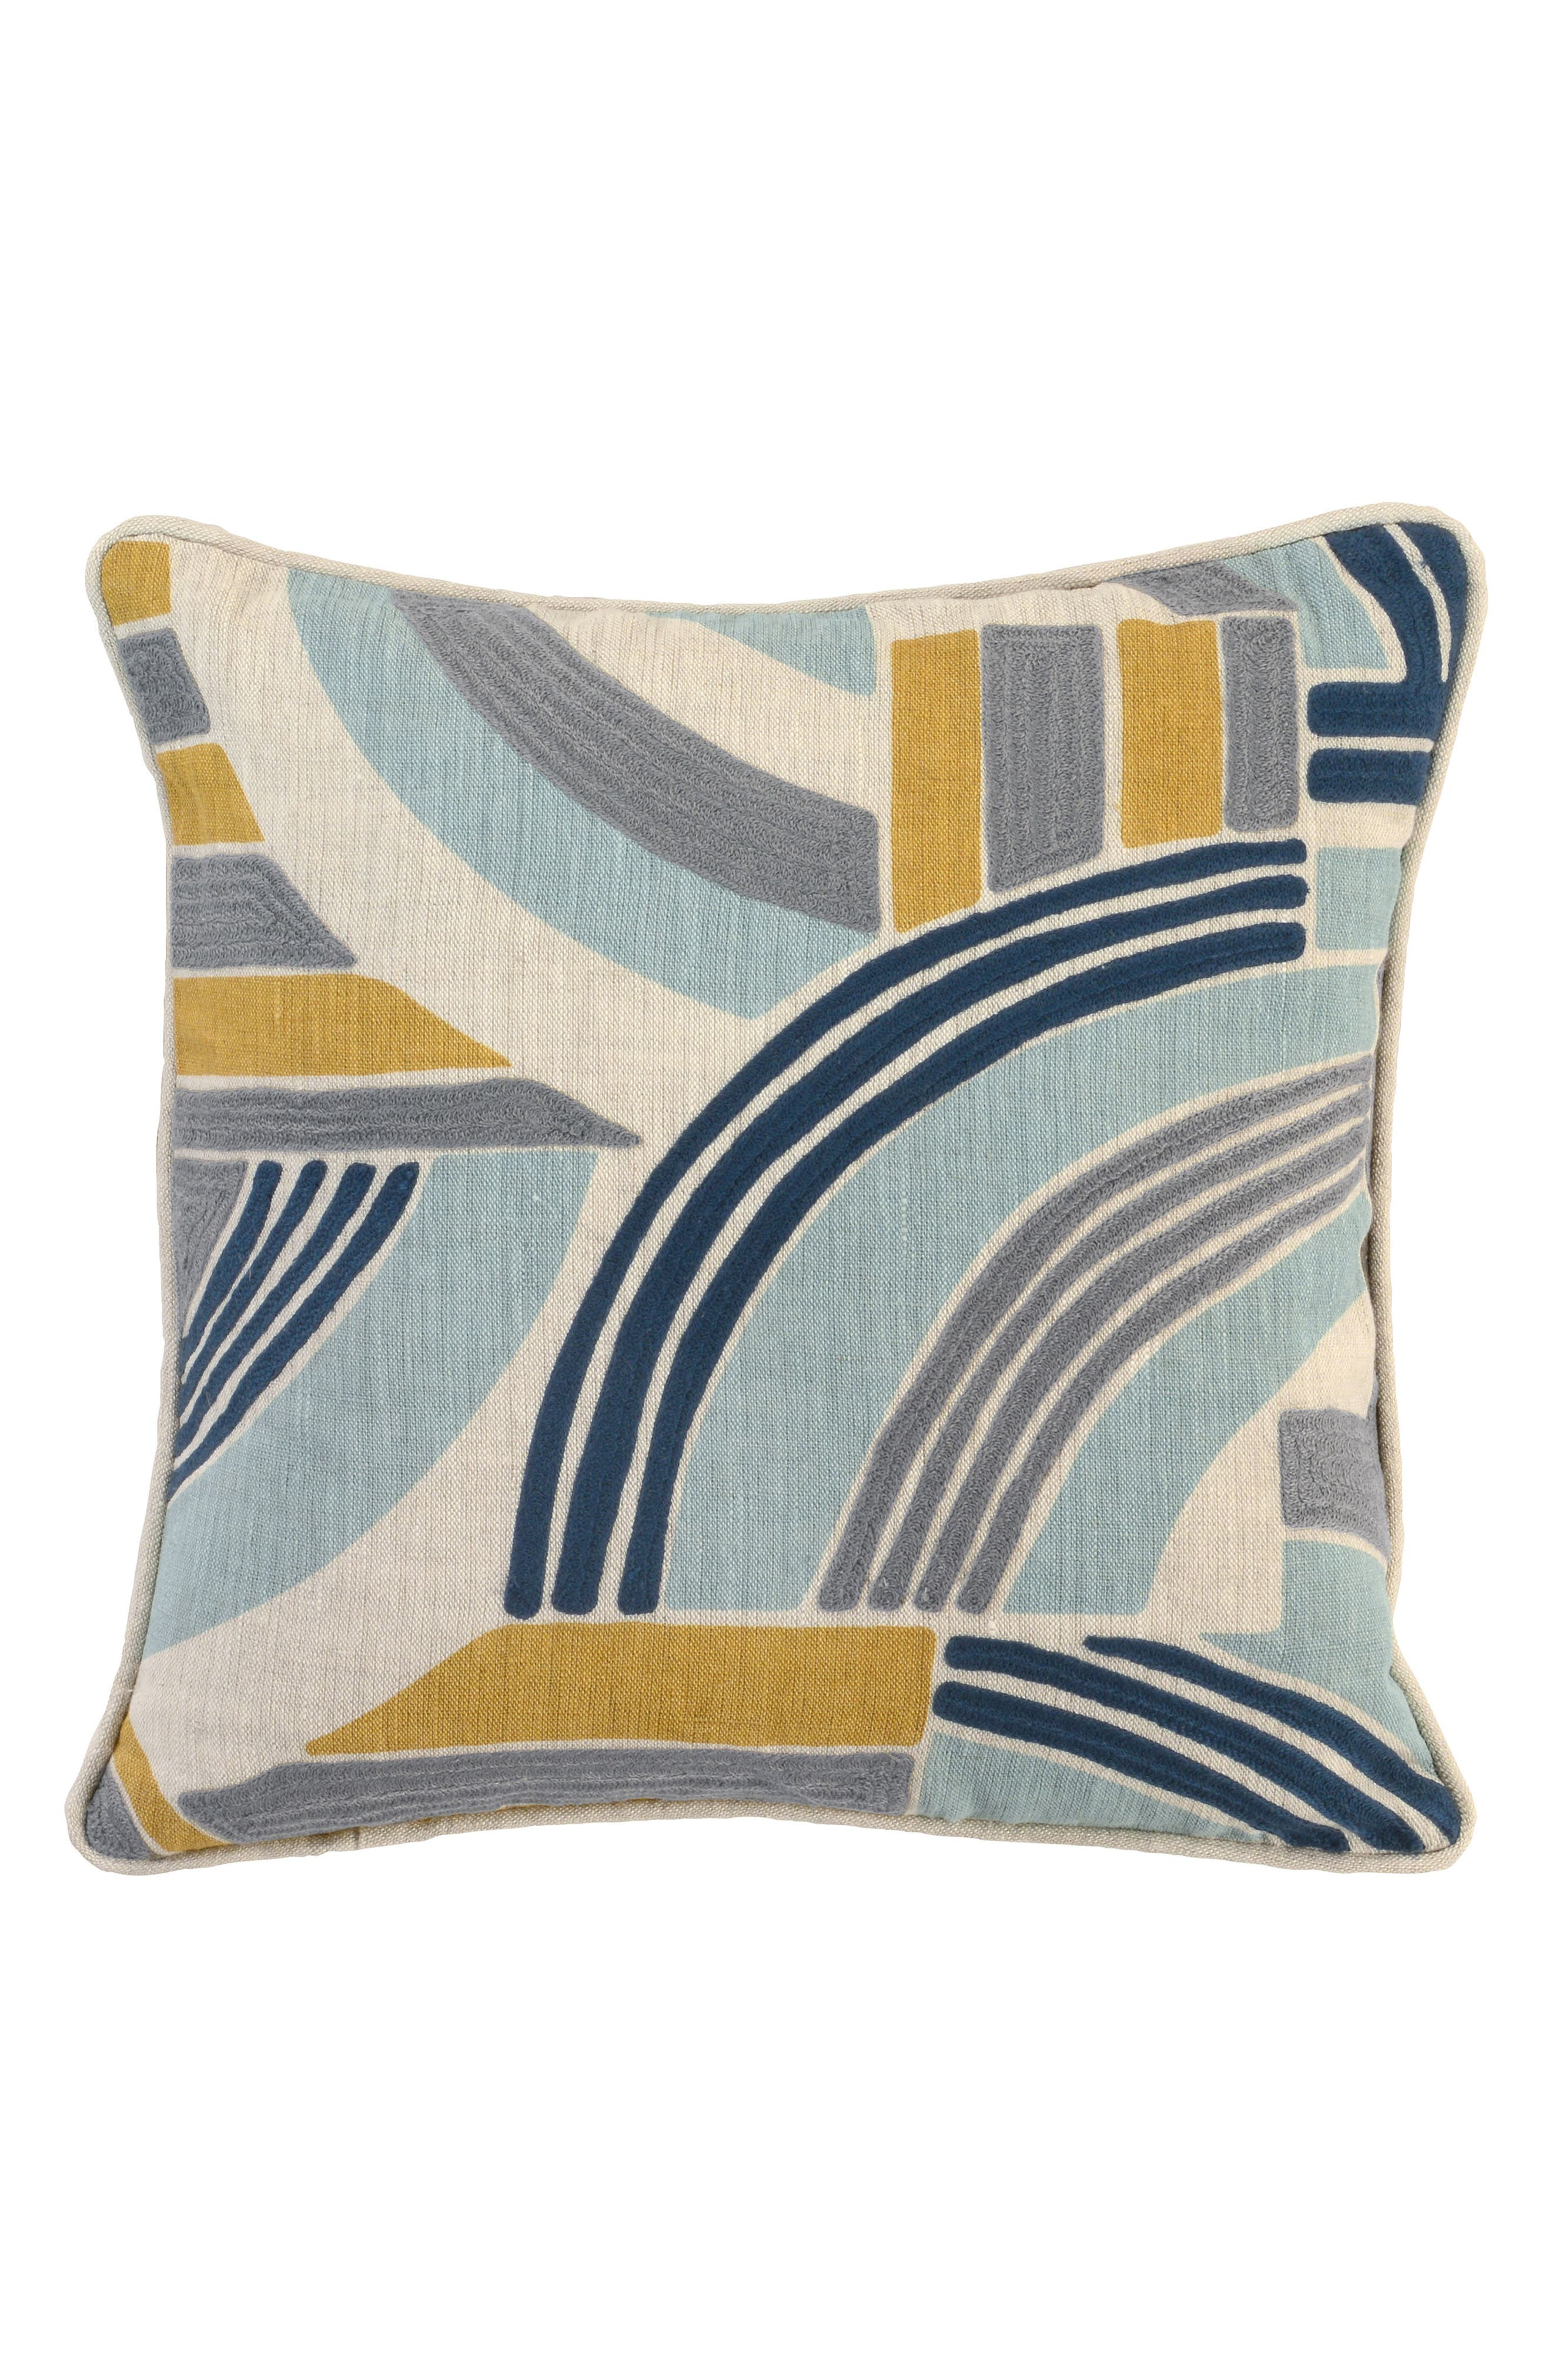 Celo Tidal Accent Pillow,                             Main thumbnail 1, color,                             SEAGLASS/ MULTI